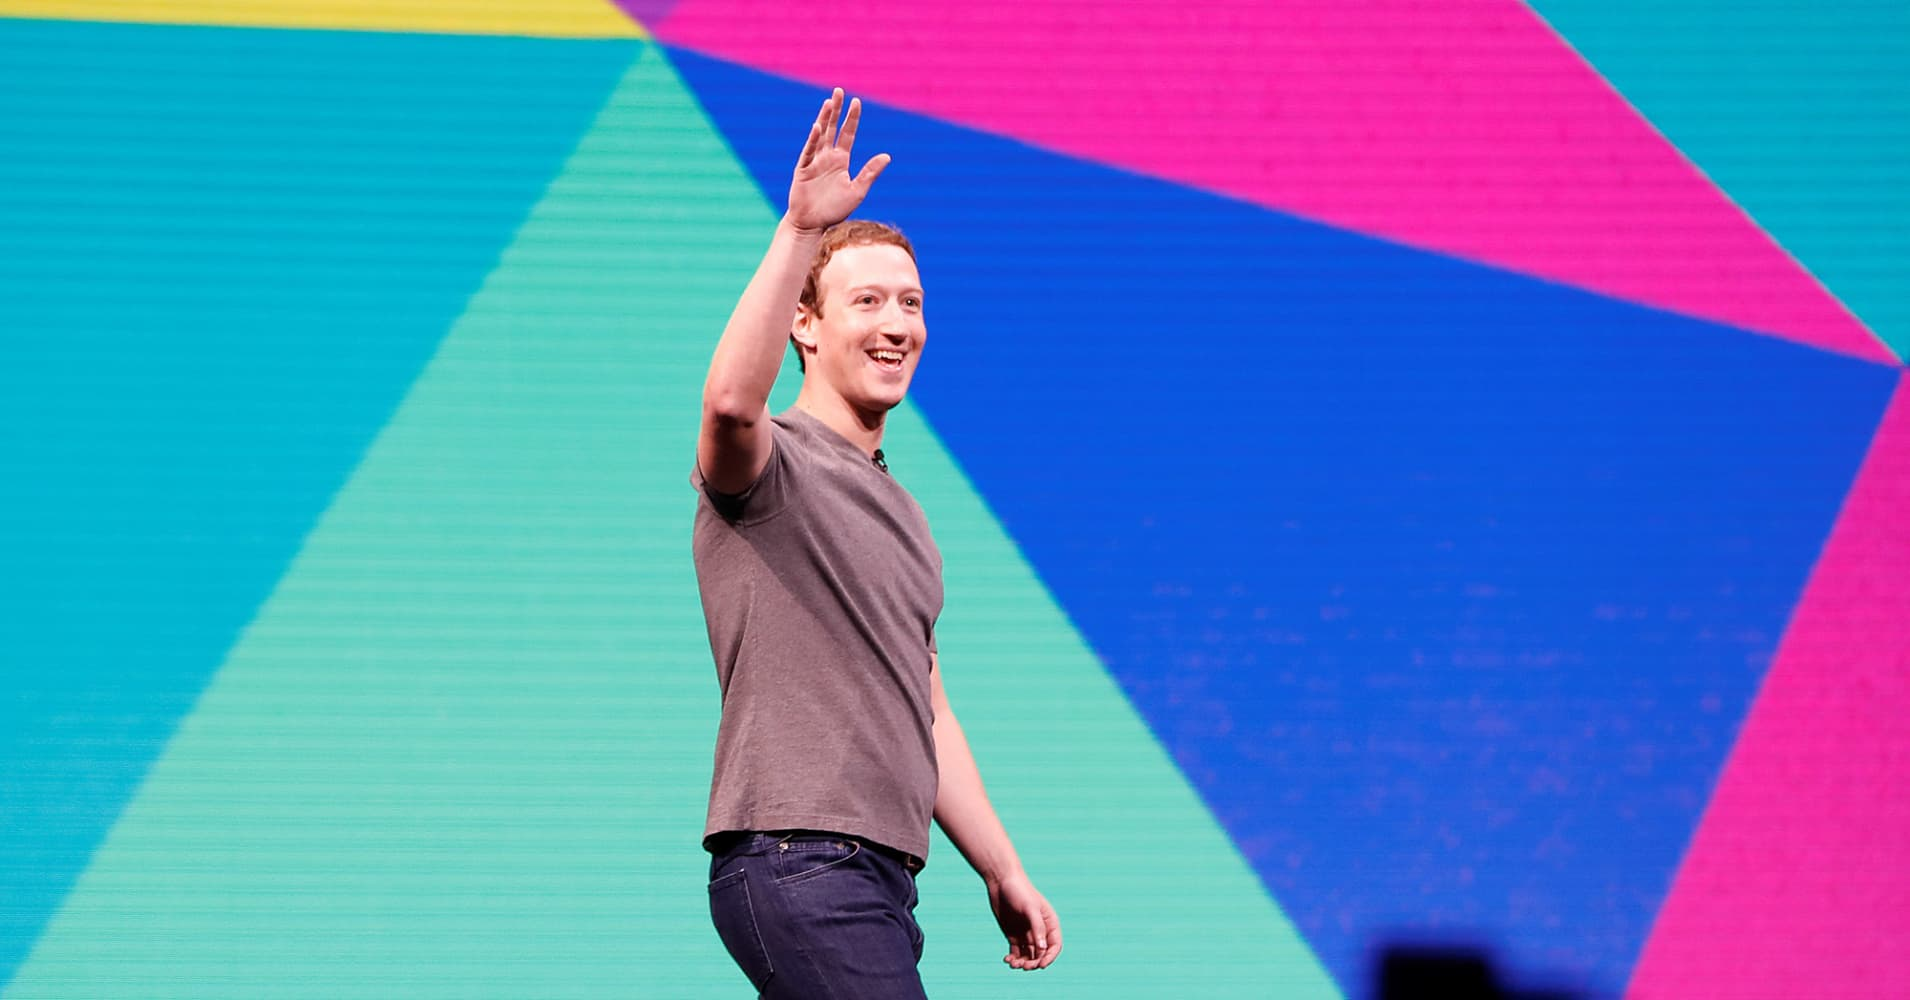 Facebook signs BuzzFeed, Vox, others for original video shows, Reuters sources say